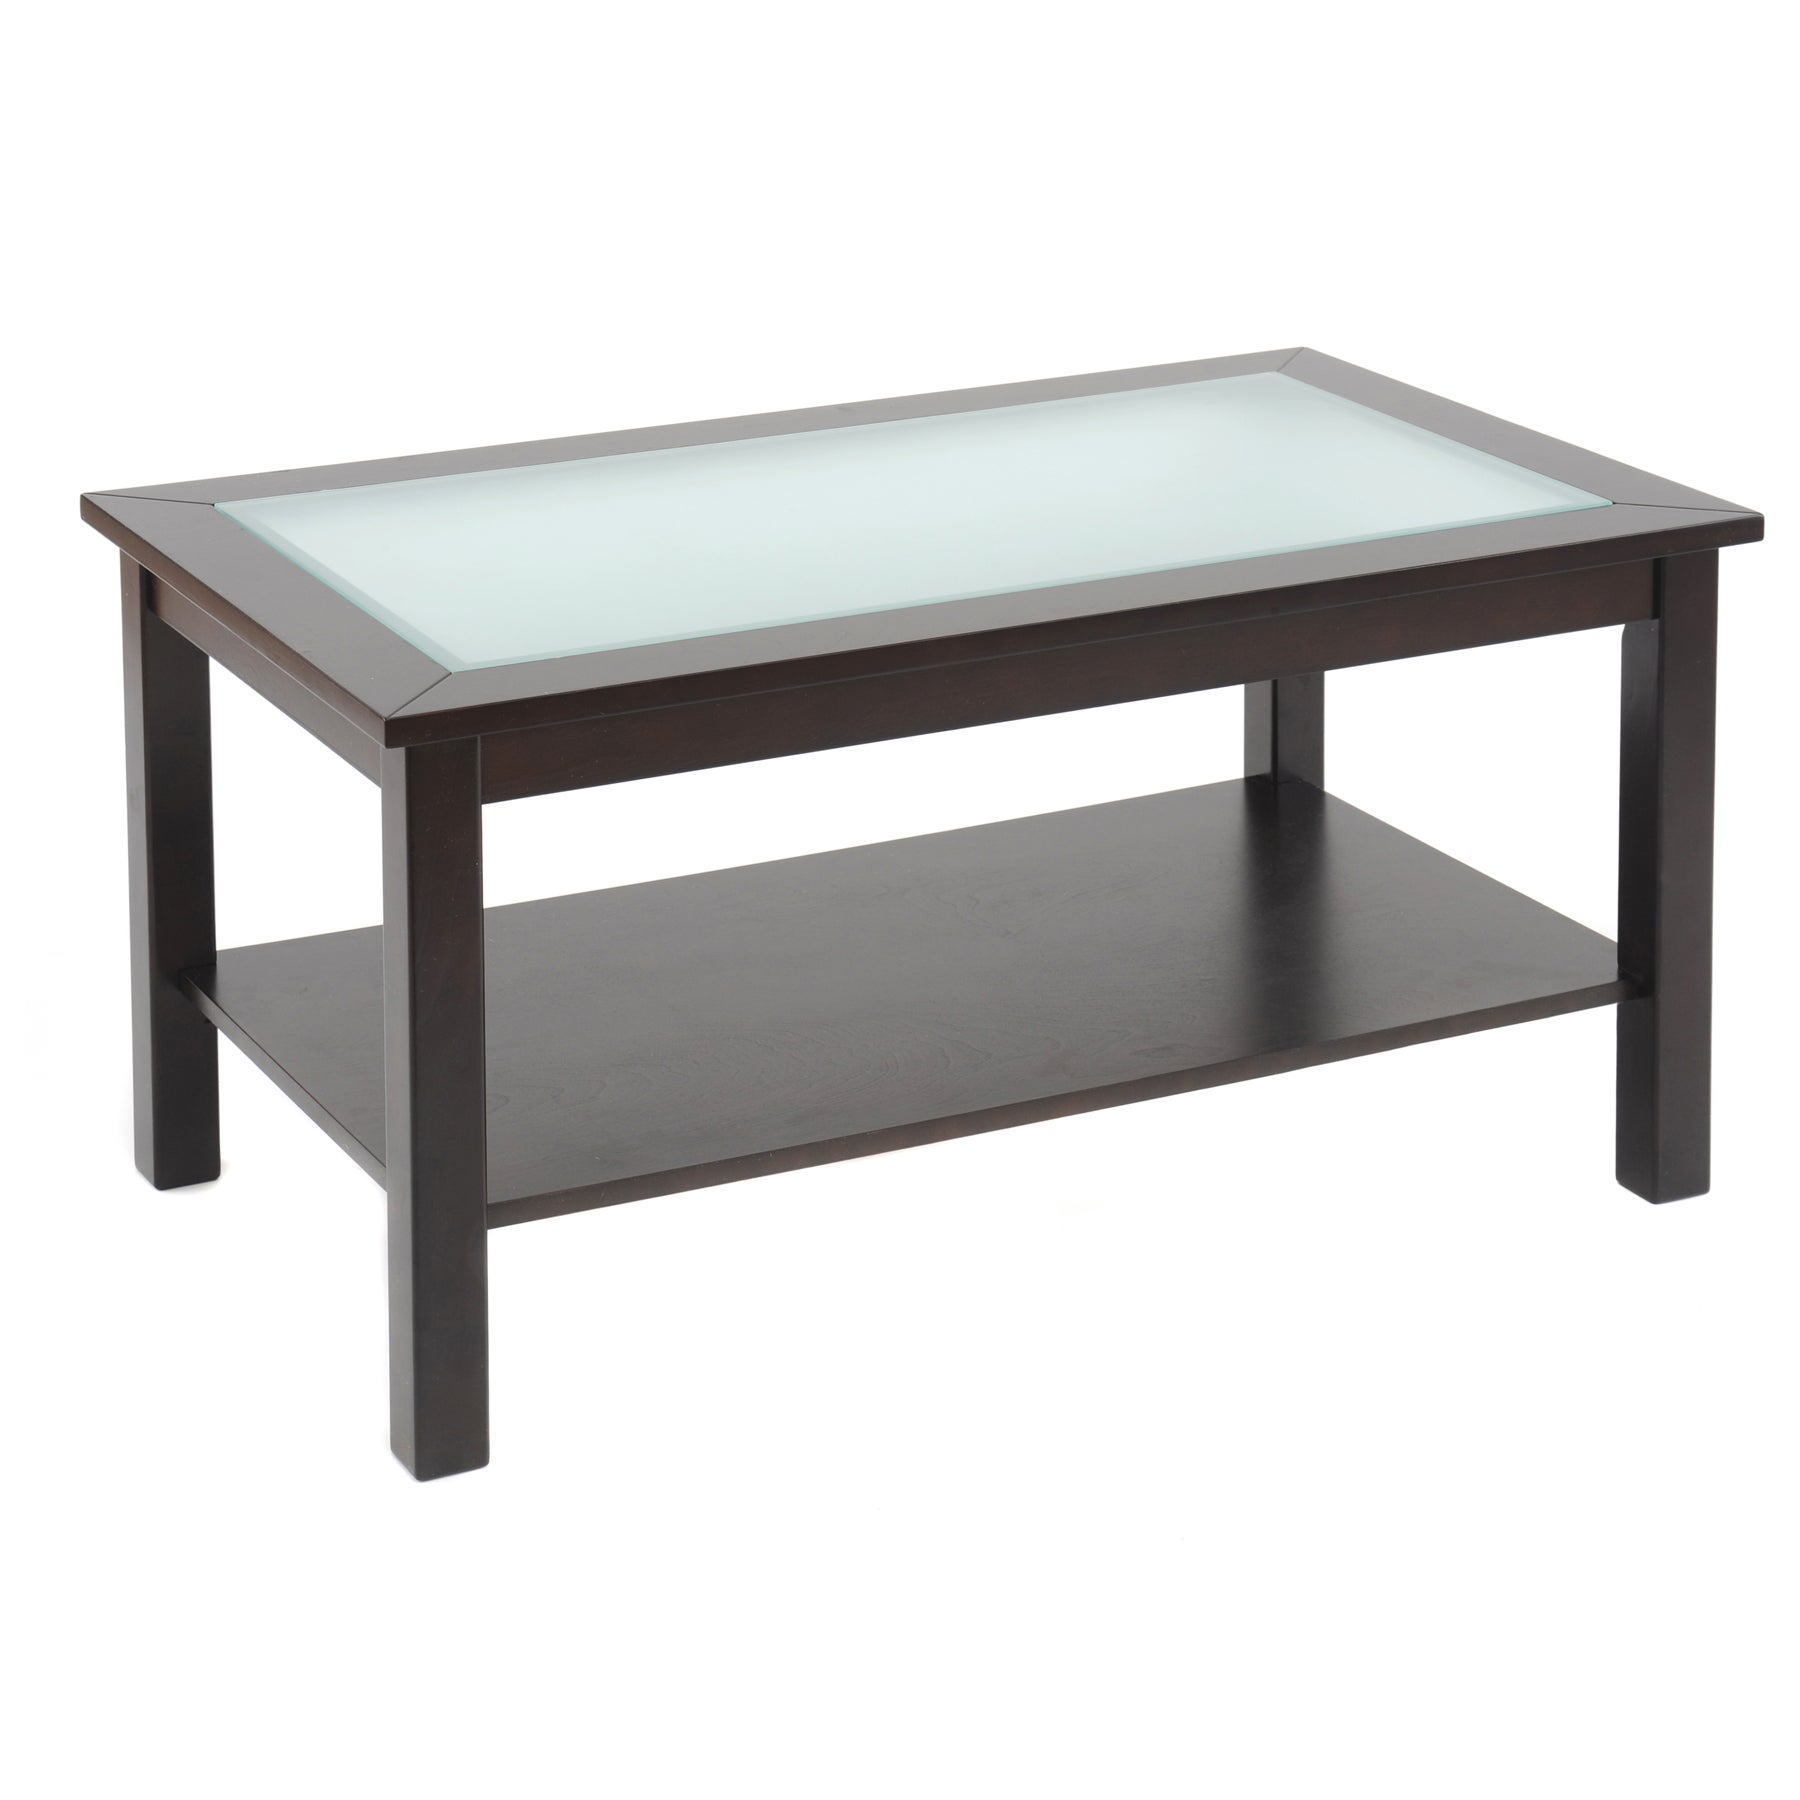 SlateGlassSteel Coffee Table 10751194 Overstockcom